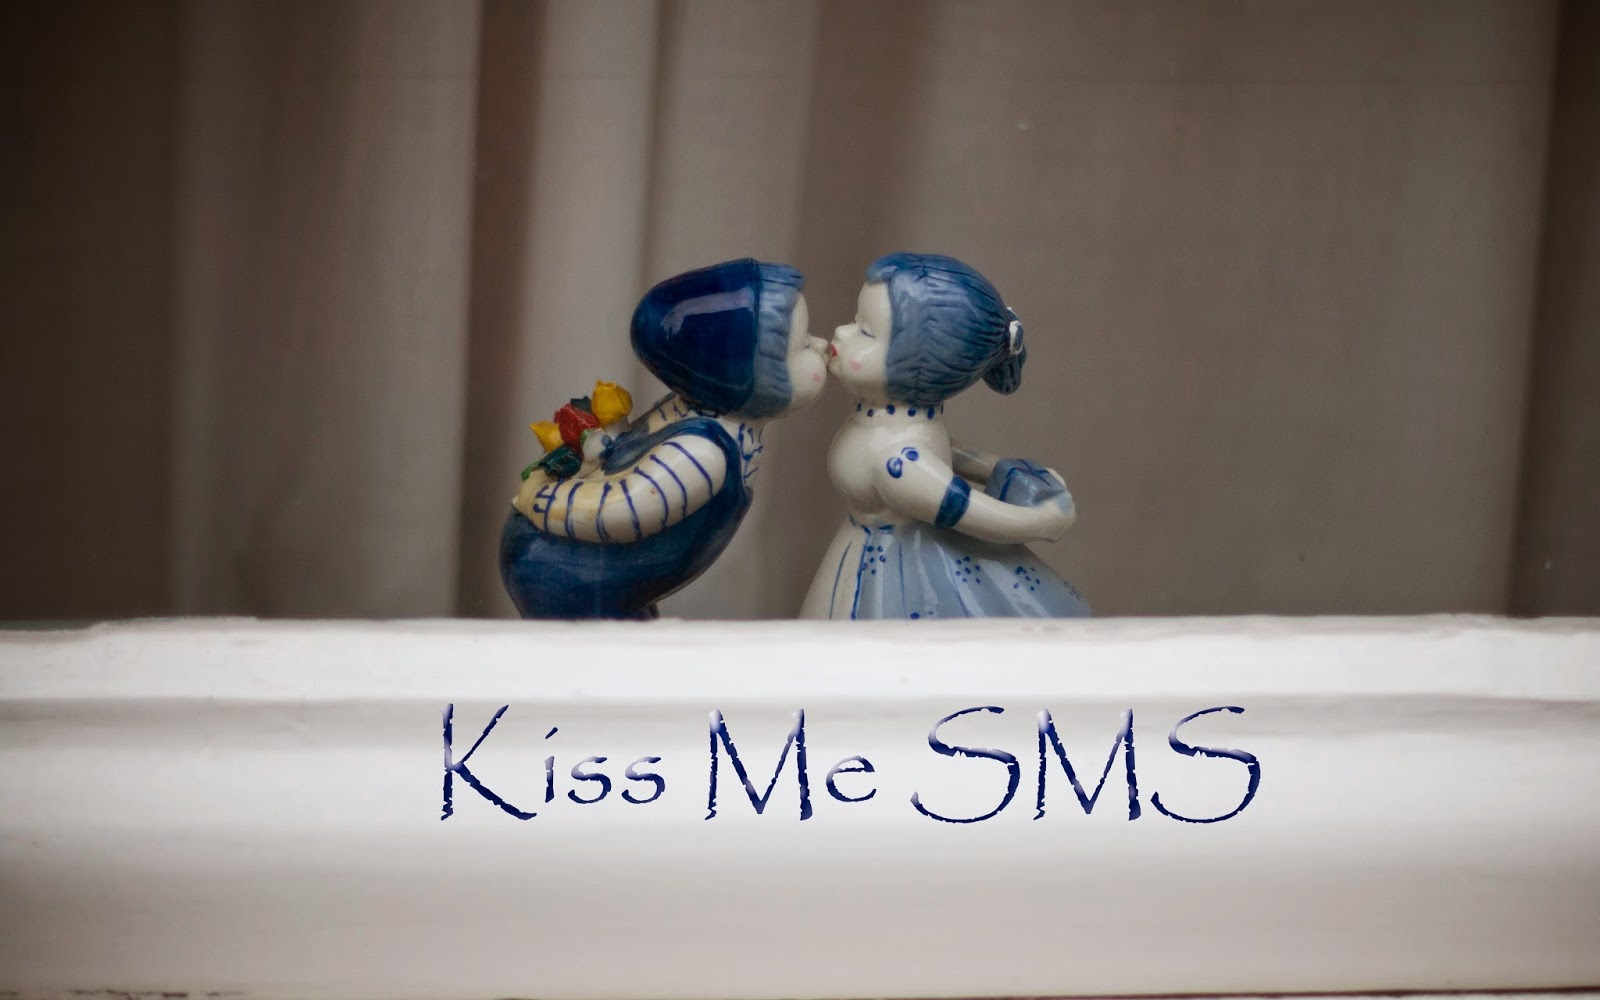 Kiss Me SMS For Valentine's Day